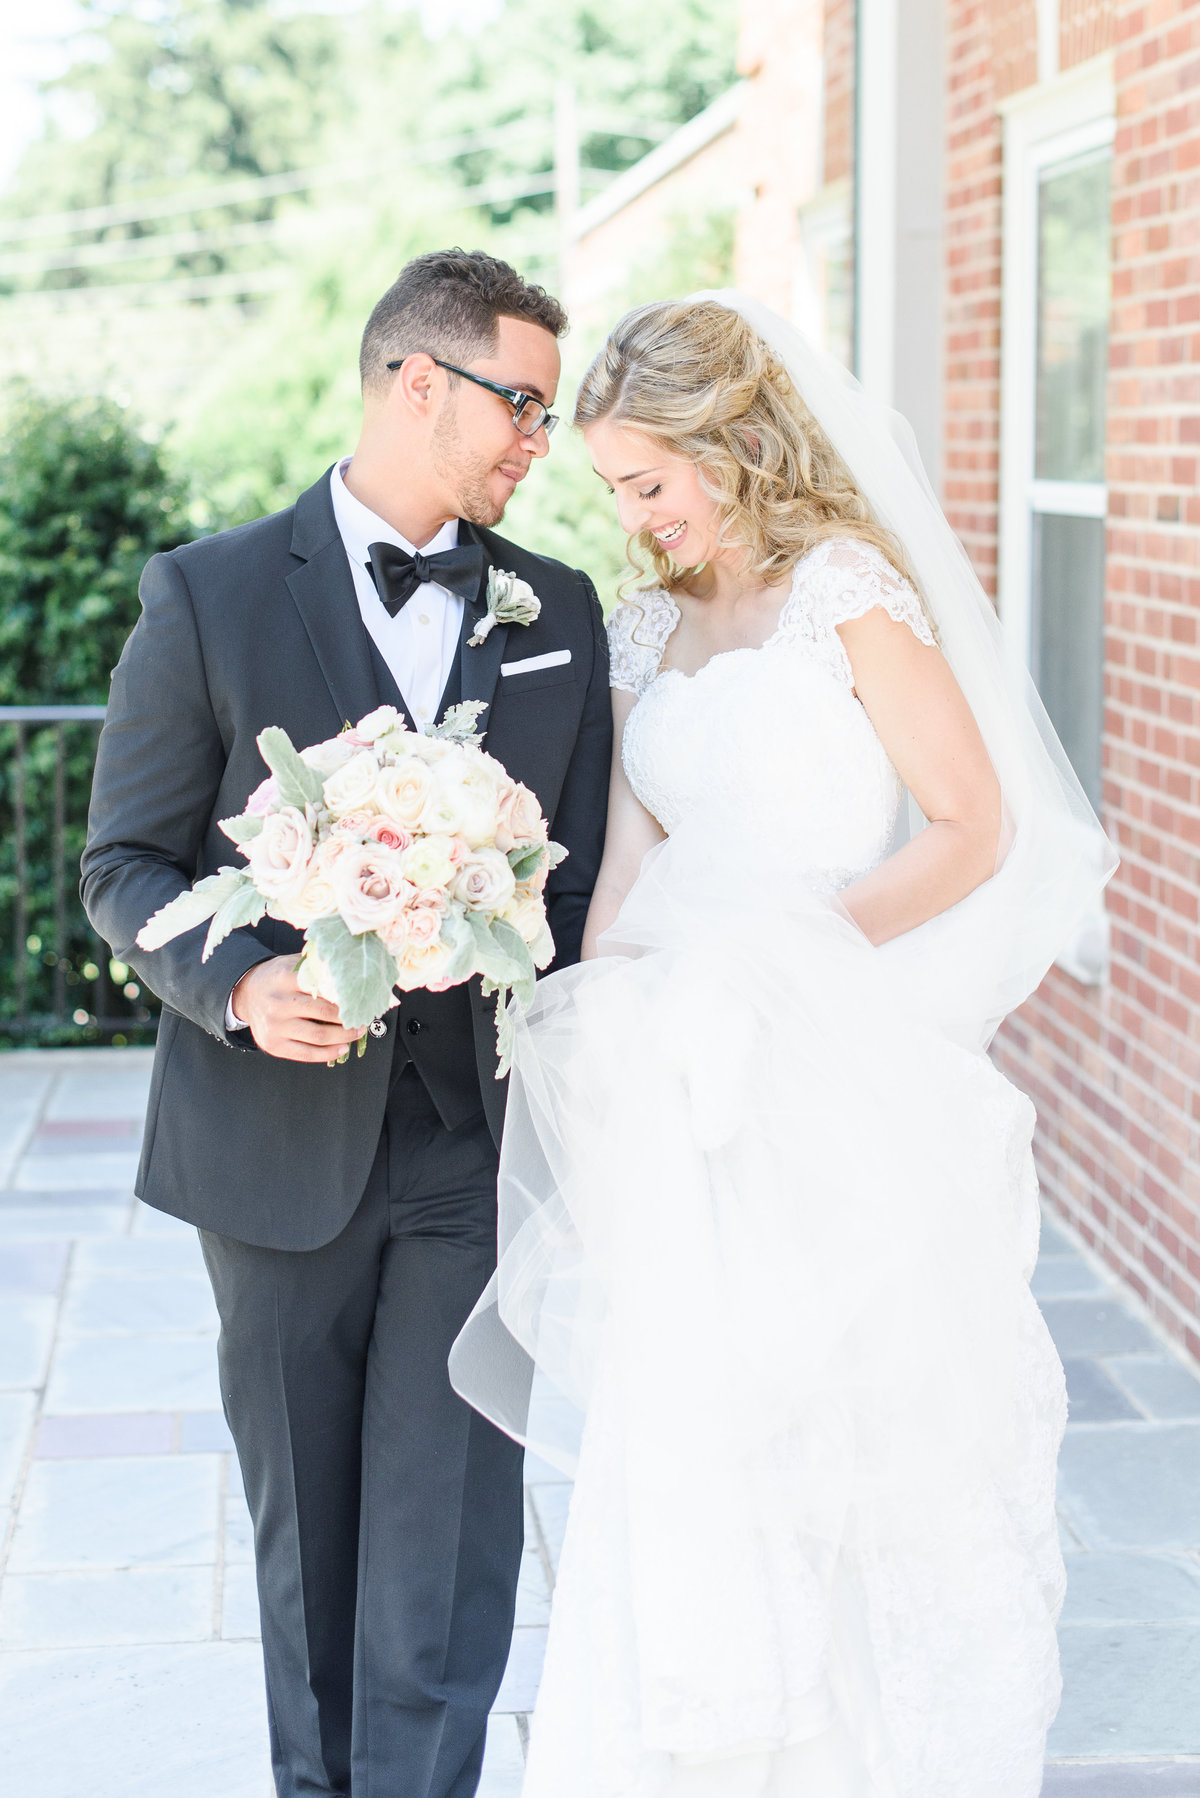 Olivia Rae Photography | Historic Acres of Hershey Wedding-299